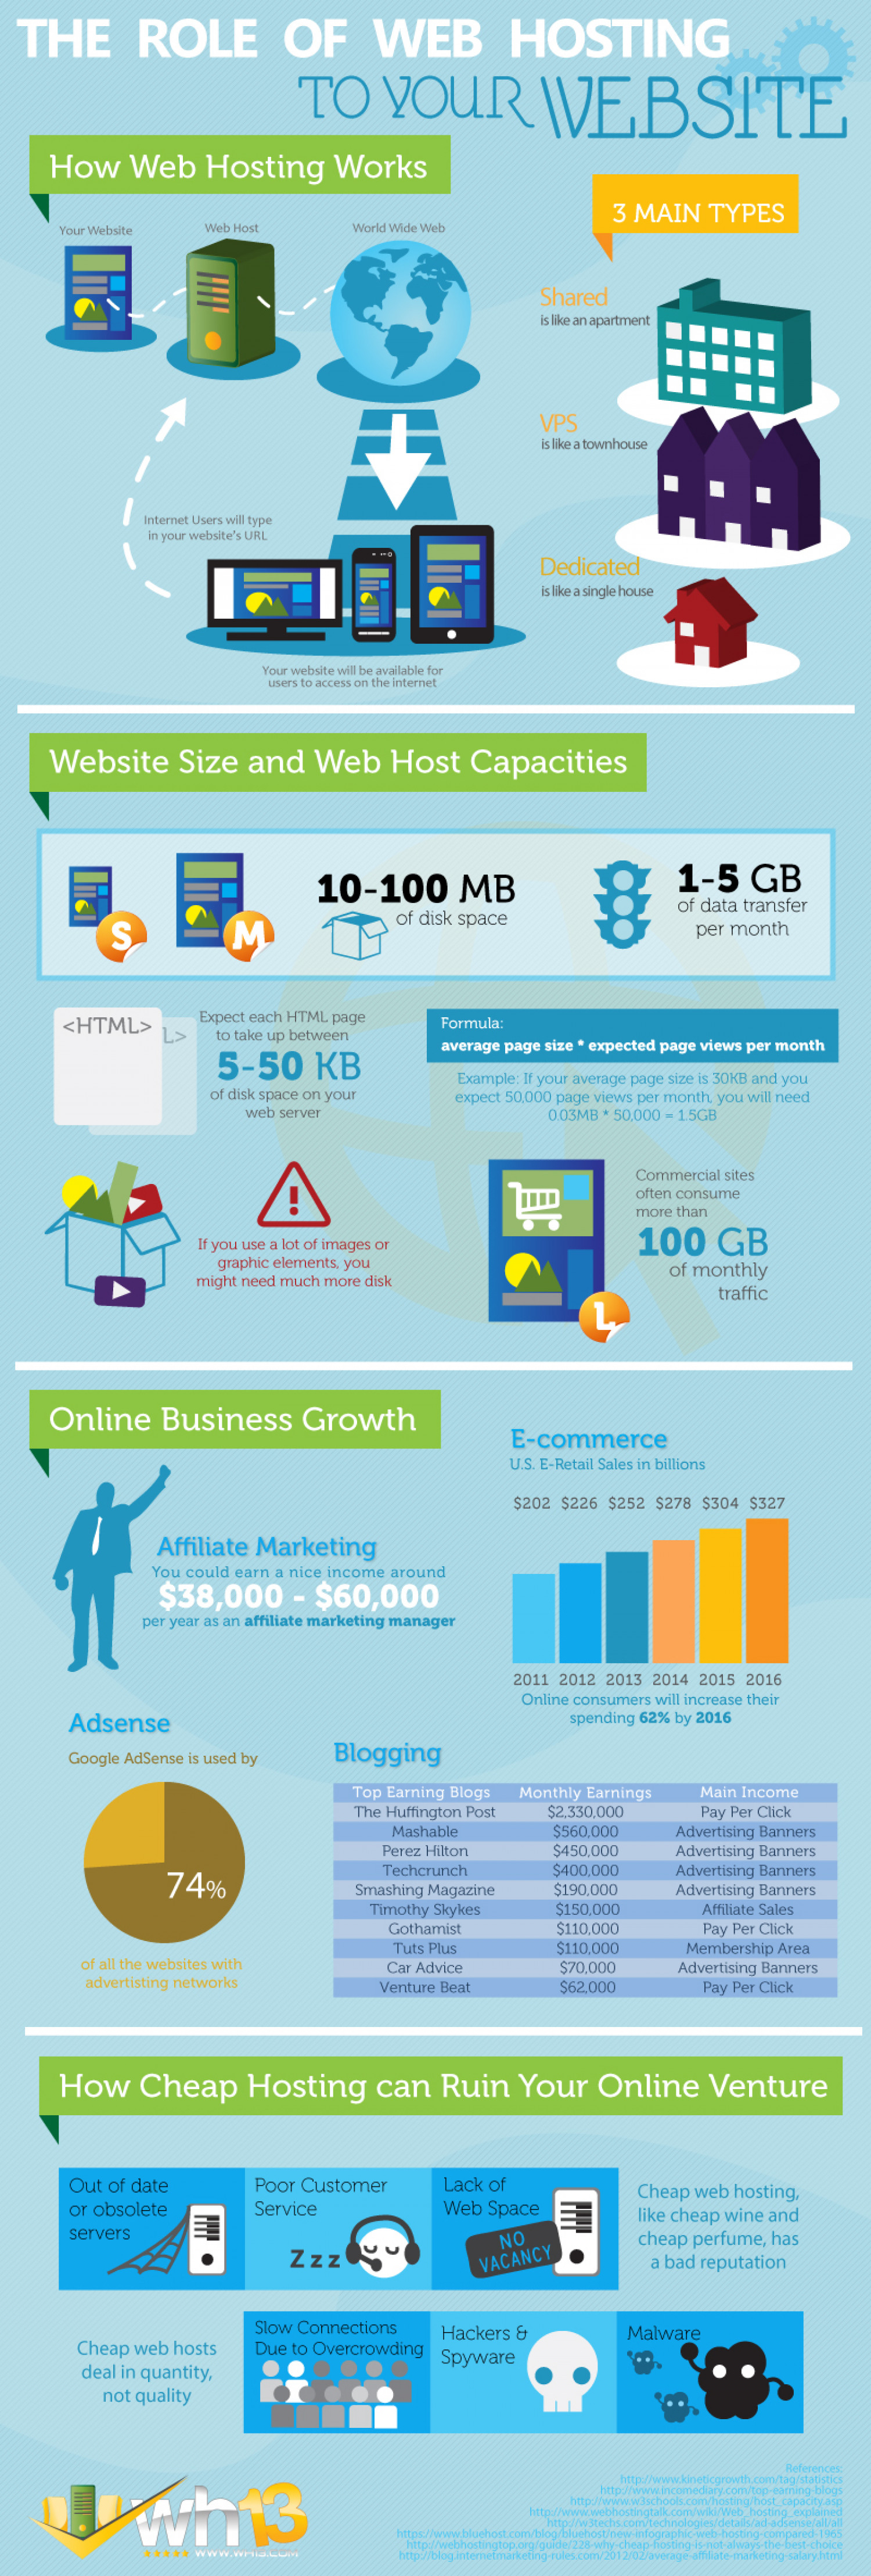 The Role of Web Hosting to Your Website Infographic